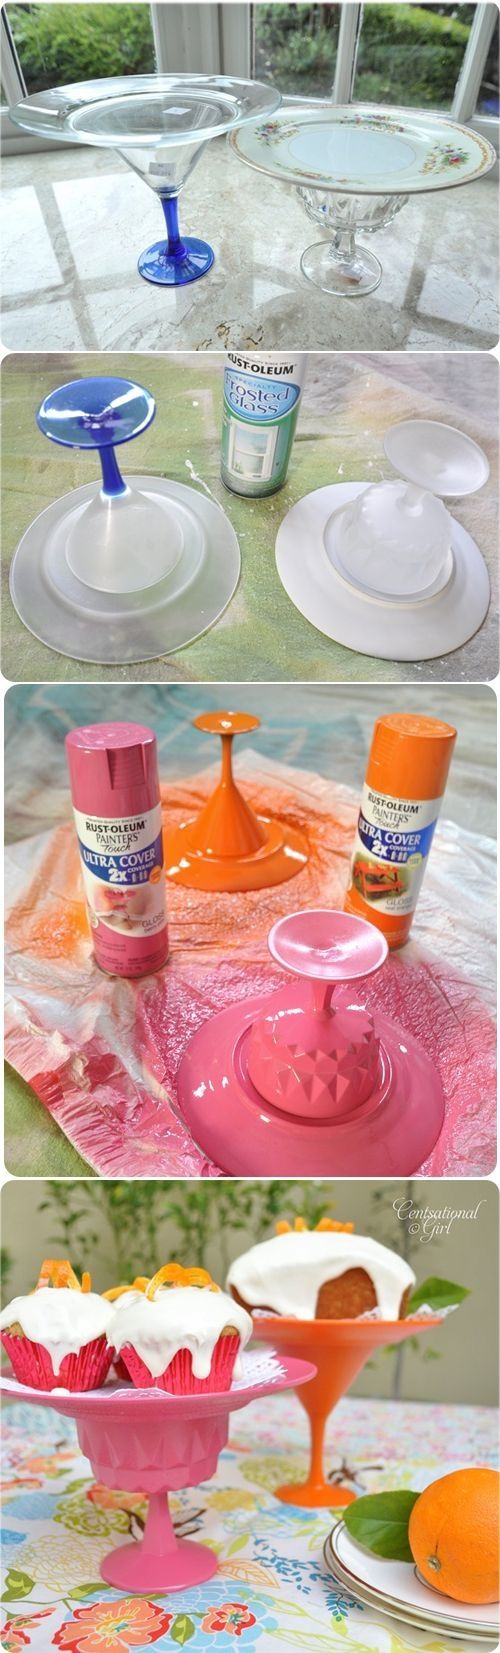 21 Great DIY Tutorials for Home Decoration  (5)